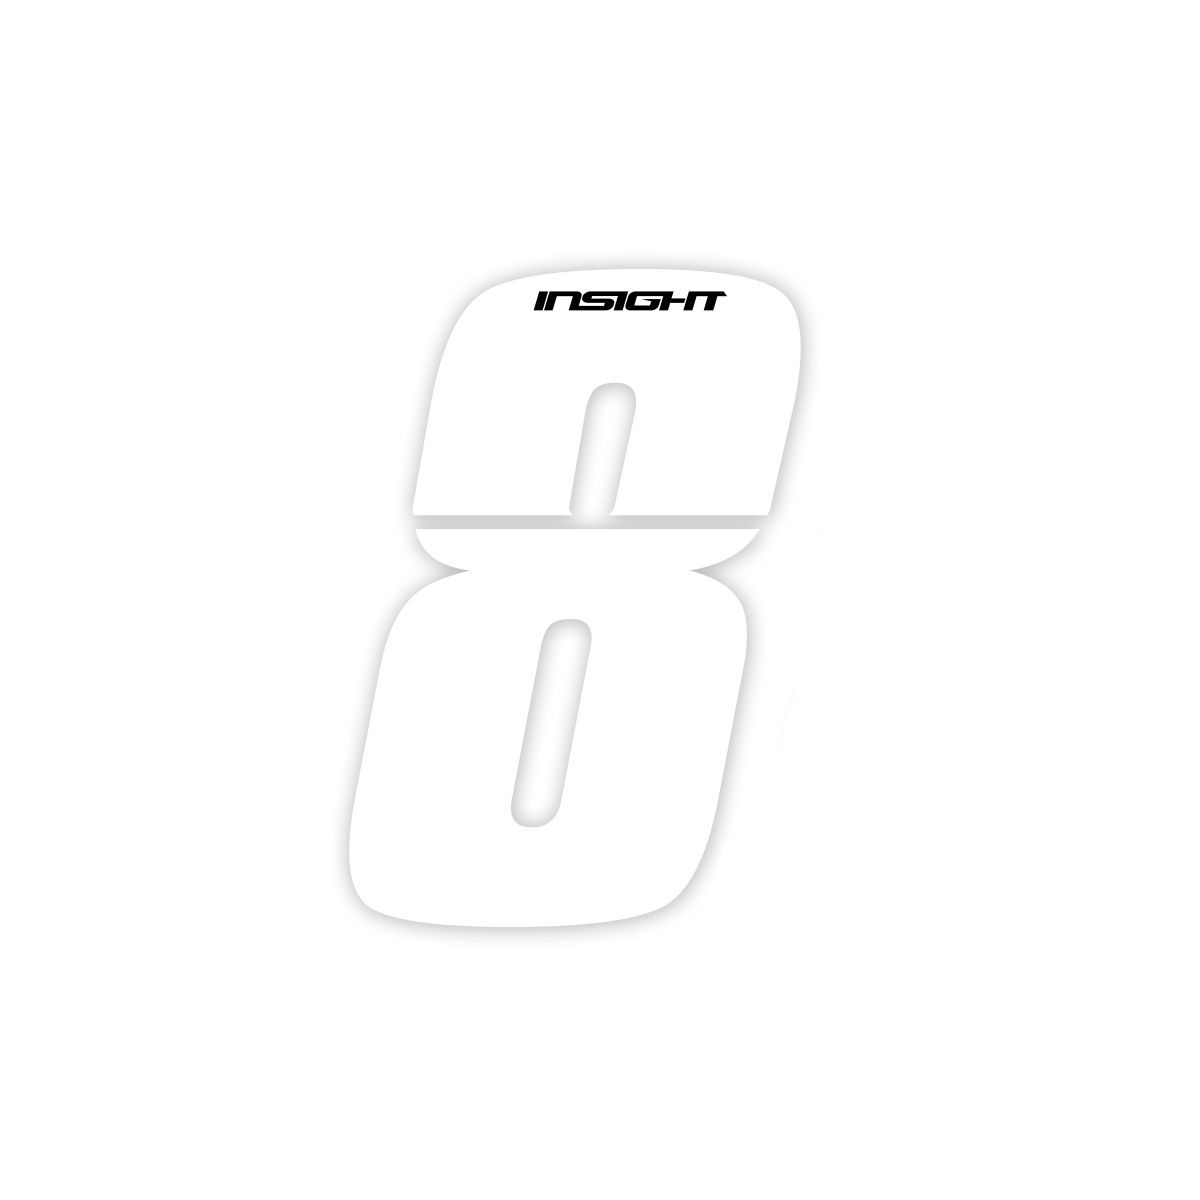 PLATE NUMBERS INSIGHT WHITE 3""